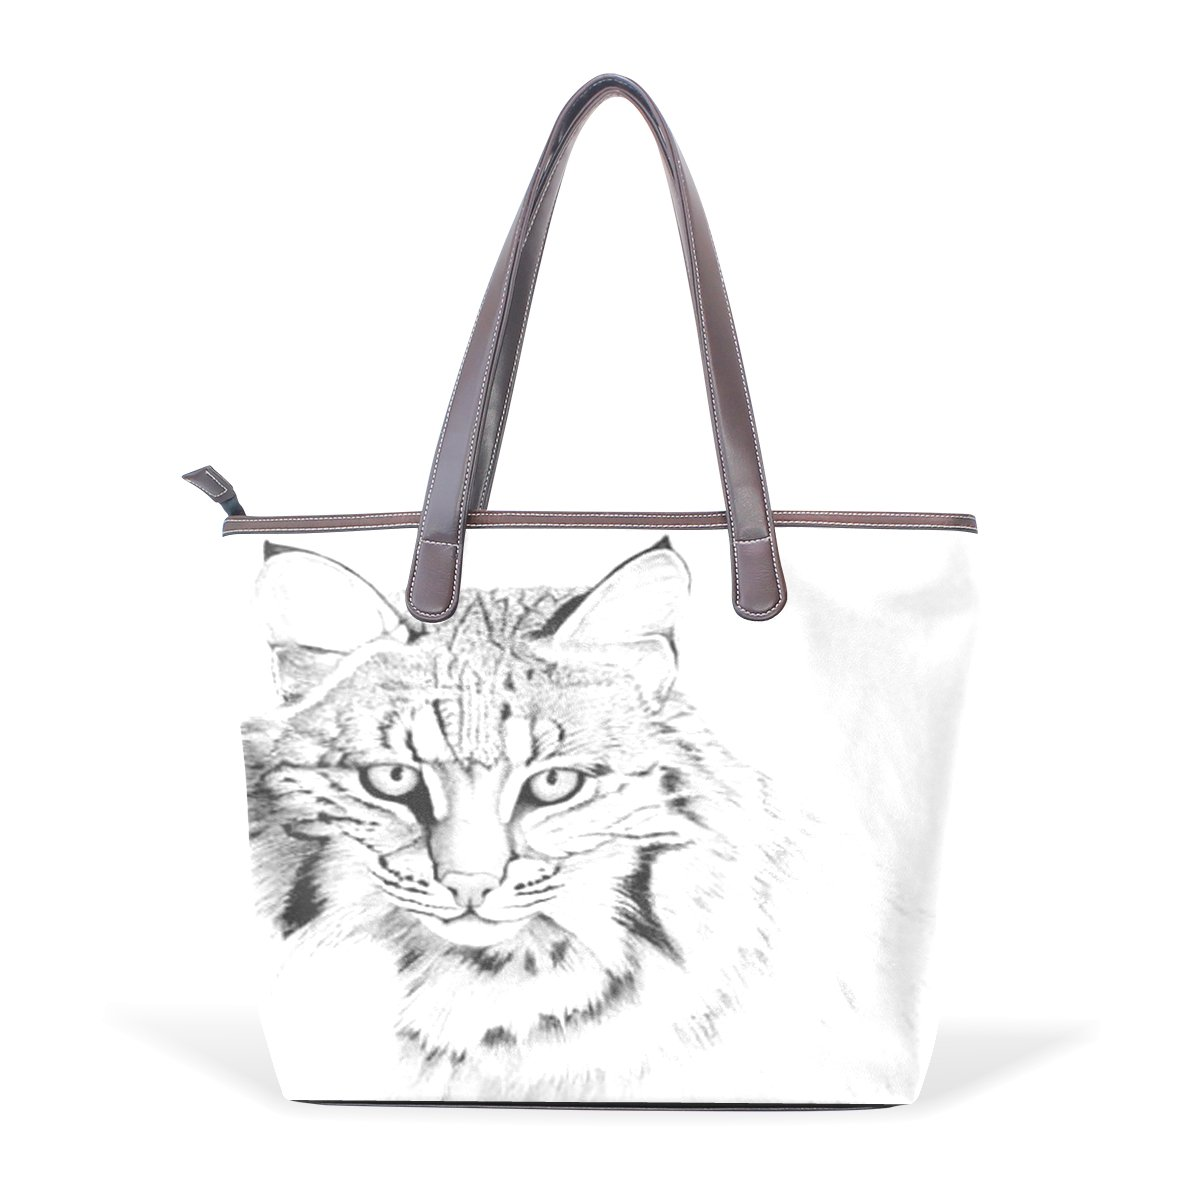 SCDS Painting The Cat PU Leather Lady Handbag Tote Bag Zipper Shoulder Bag